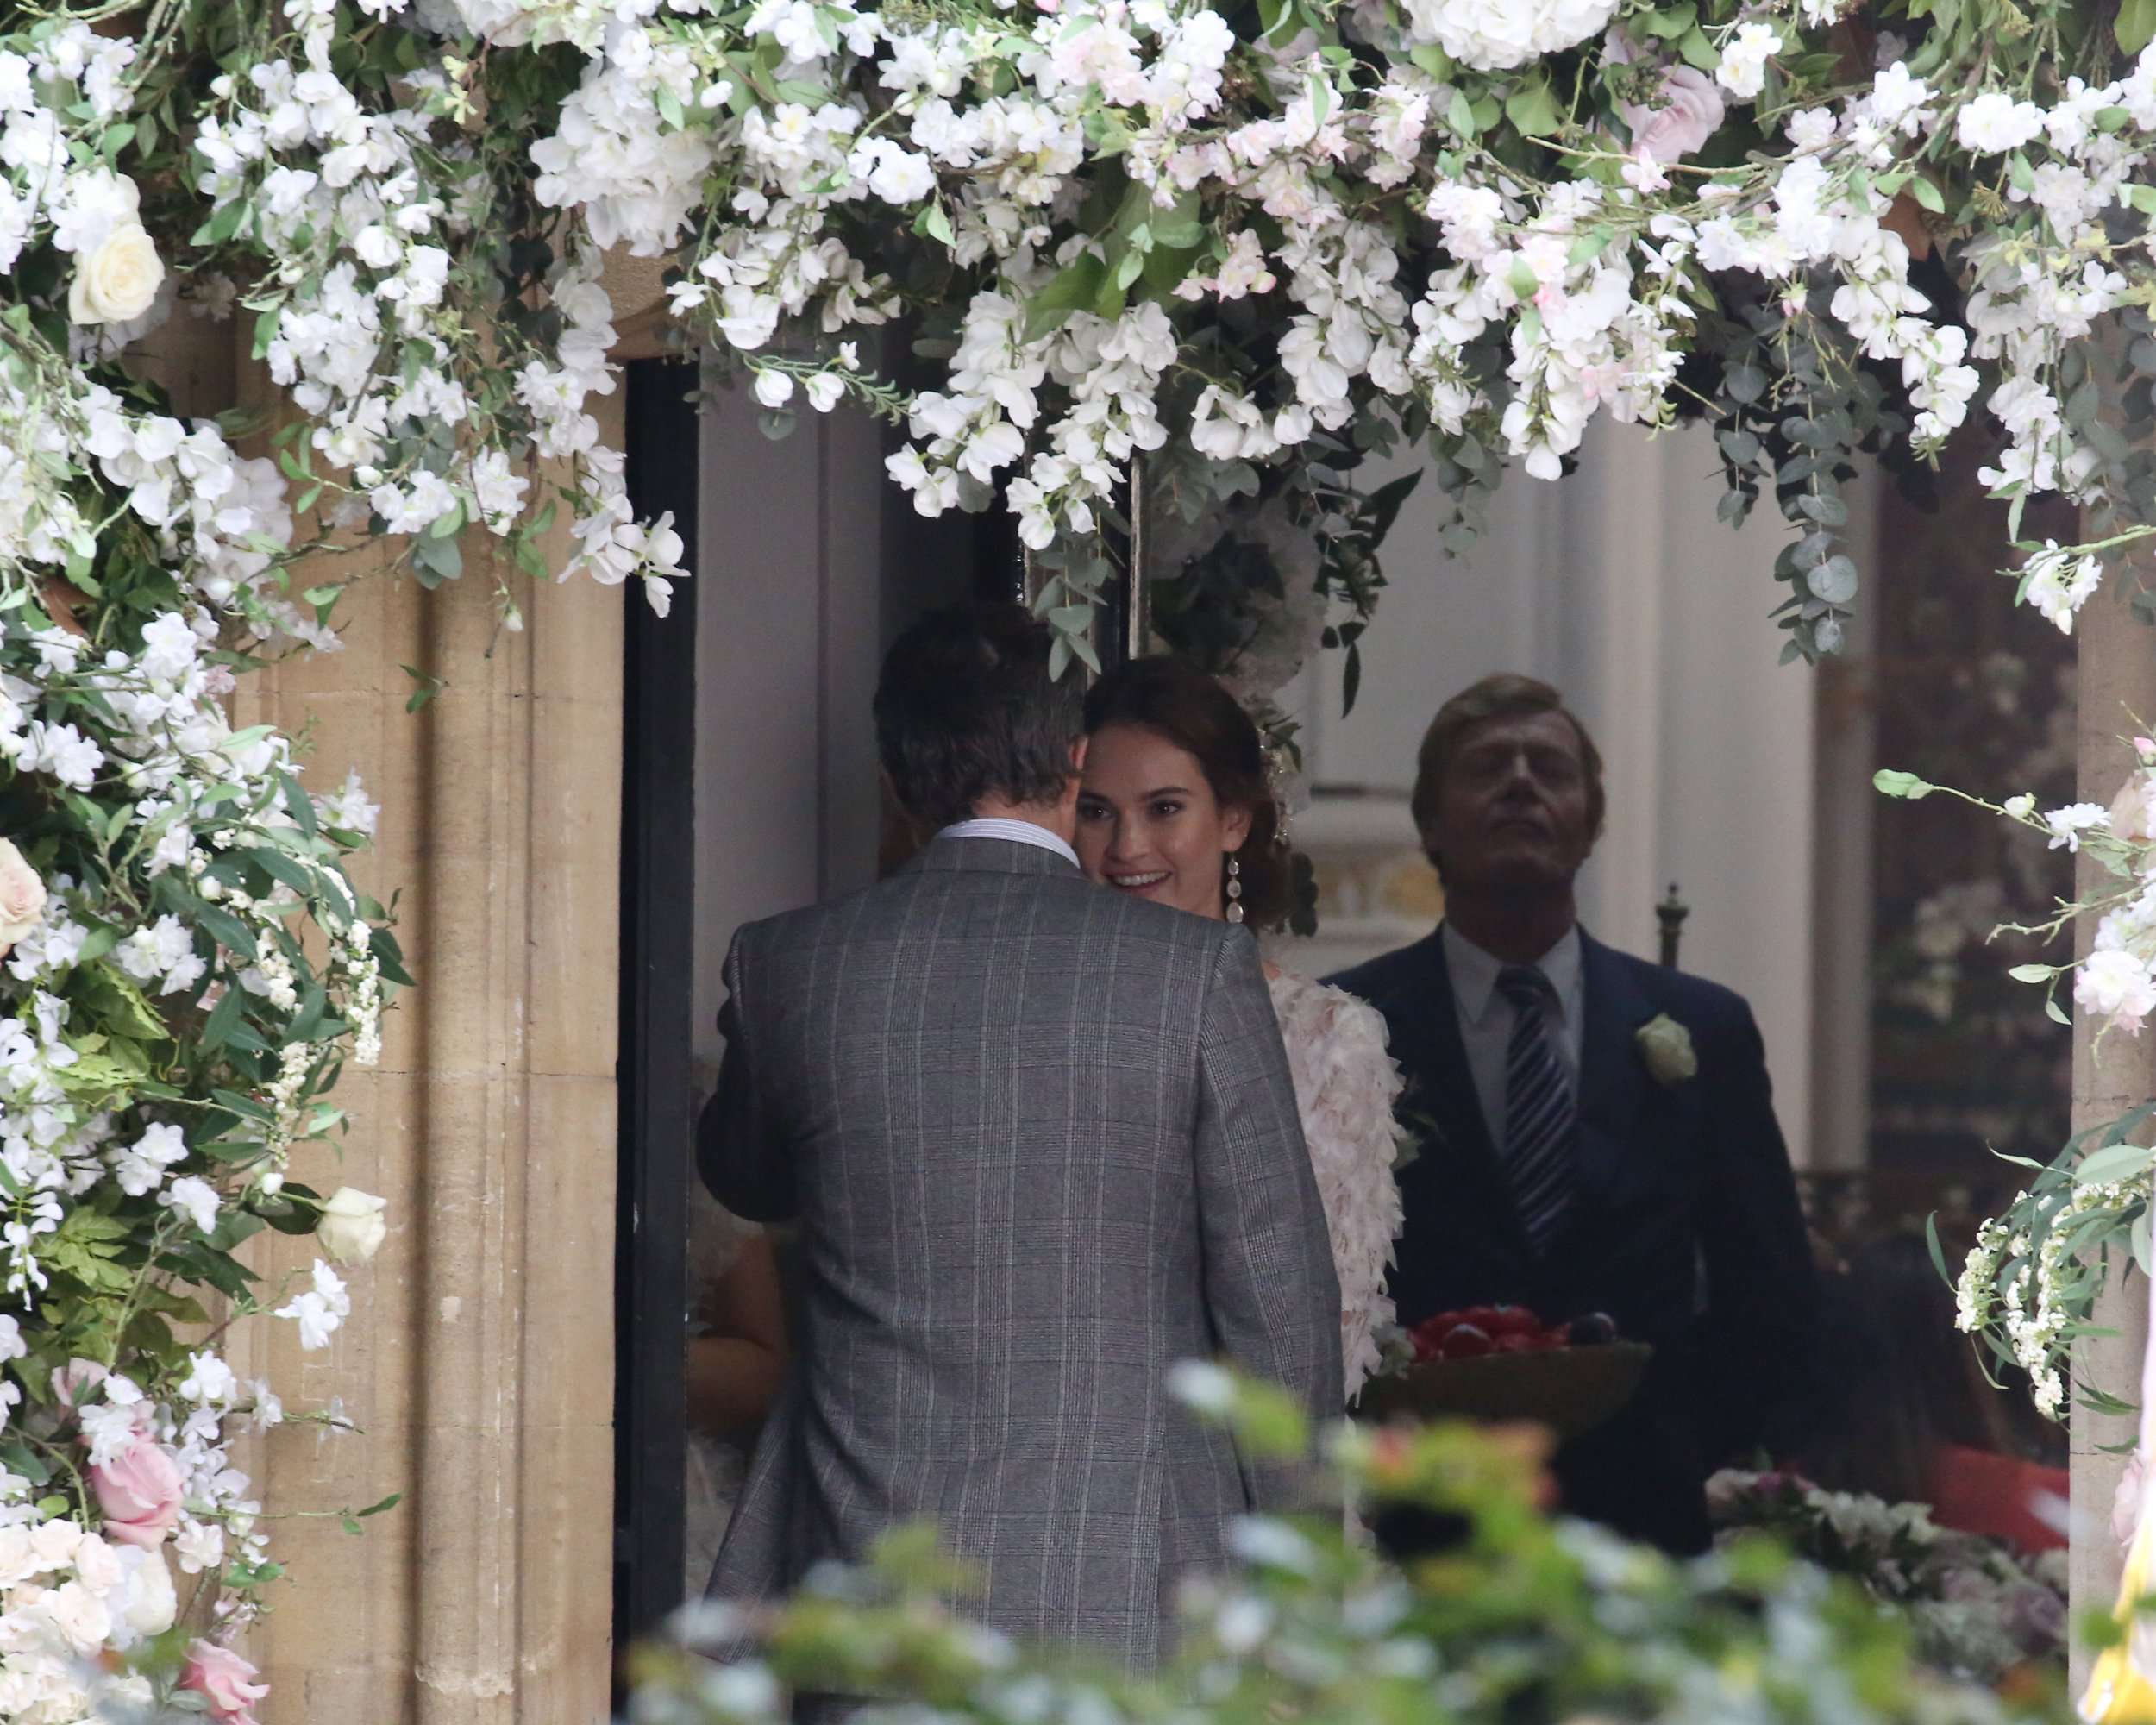 LONDON, ENGLAND - DECEMBER 14: Hugh Grant and Lily James seen filming 'Four Weddings and a Funeral' at a church in North London for Comic Relief, titled 'One Red Nose Day and a Wedding' on December 14, 2018 in London, England. (Photo by Neil Mockford/GC Images)